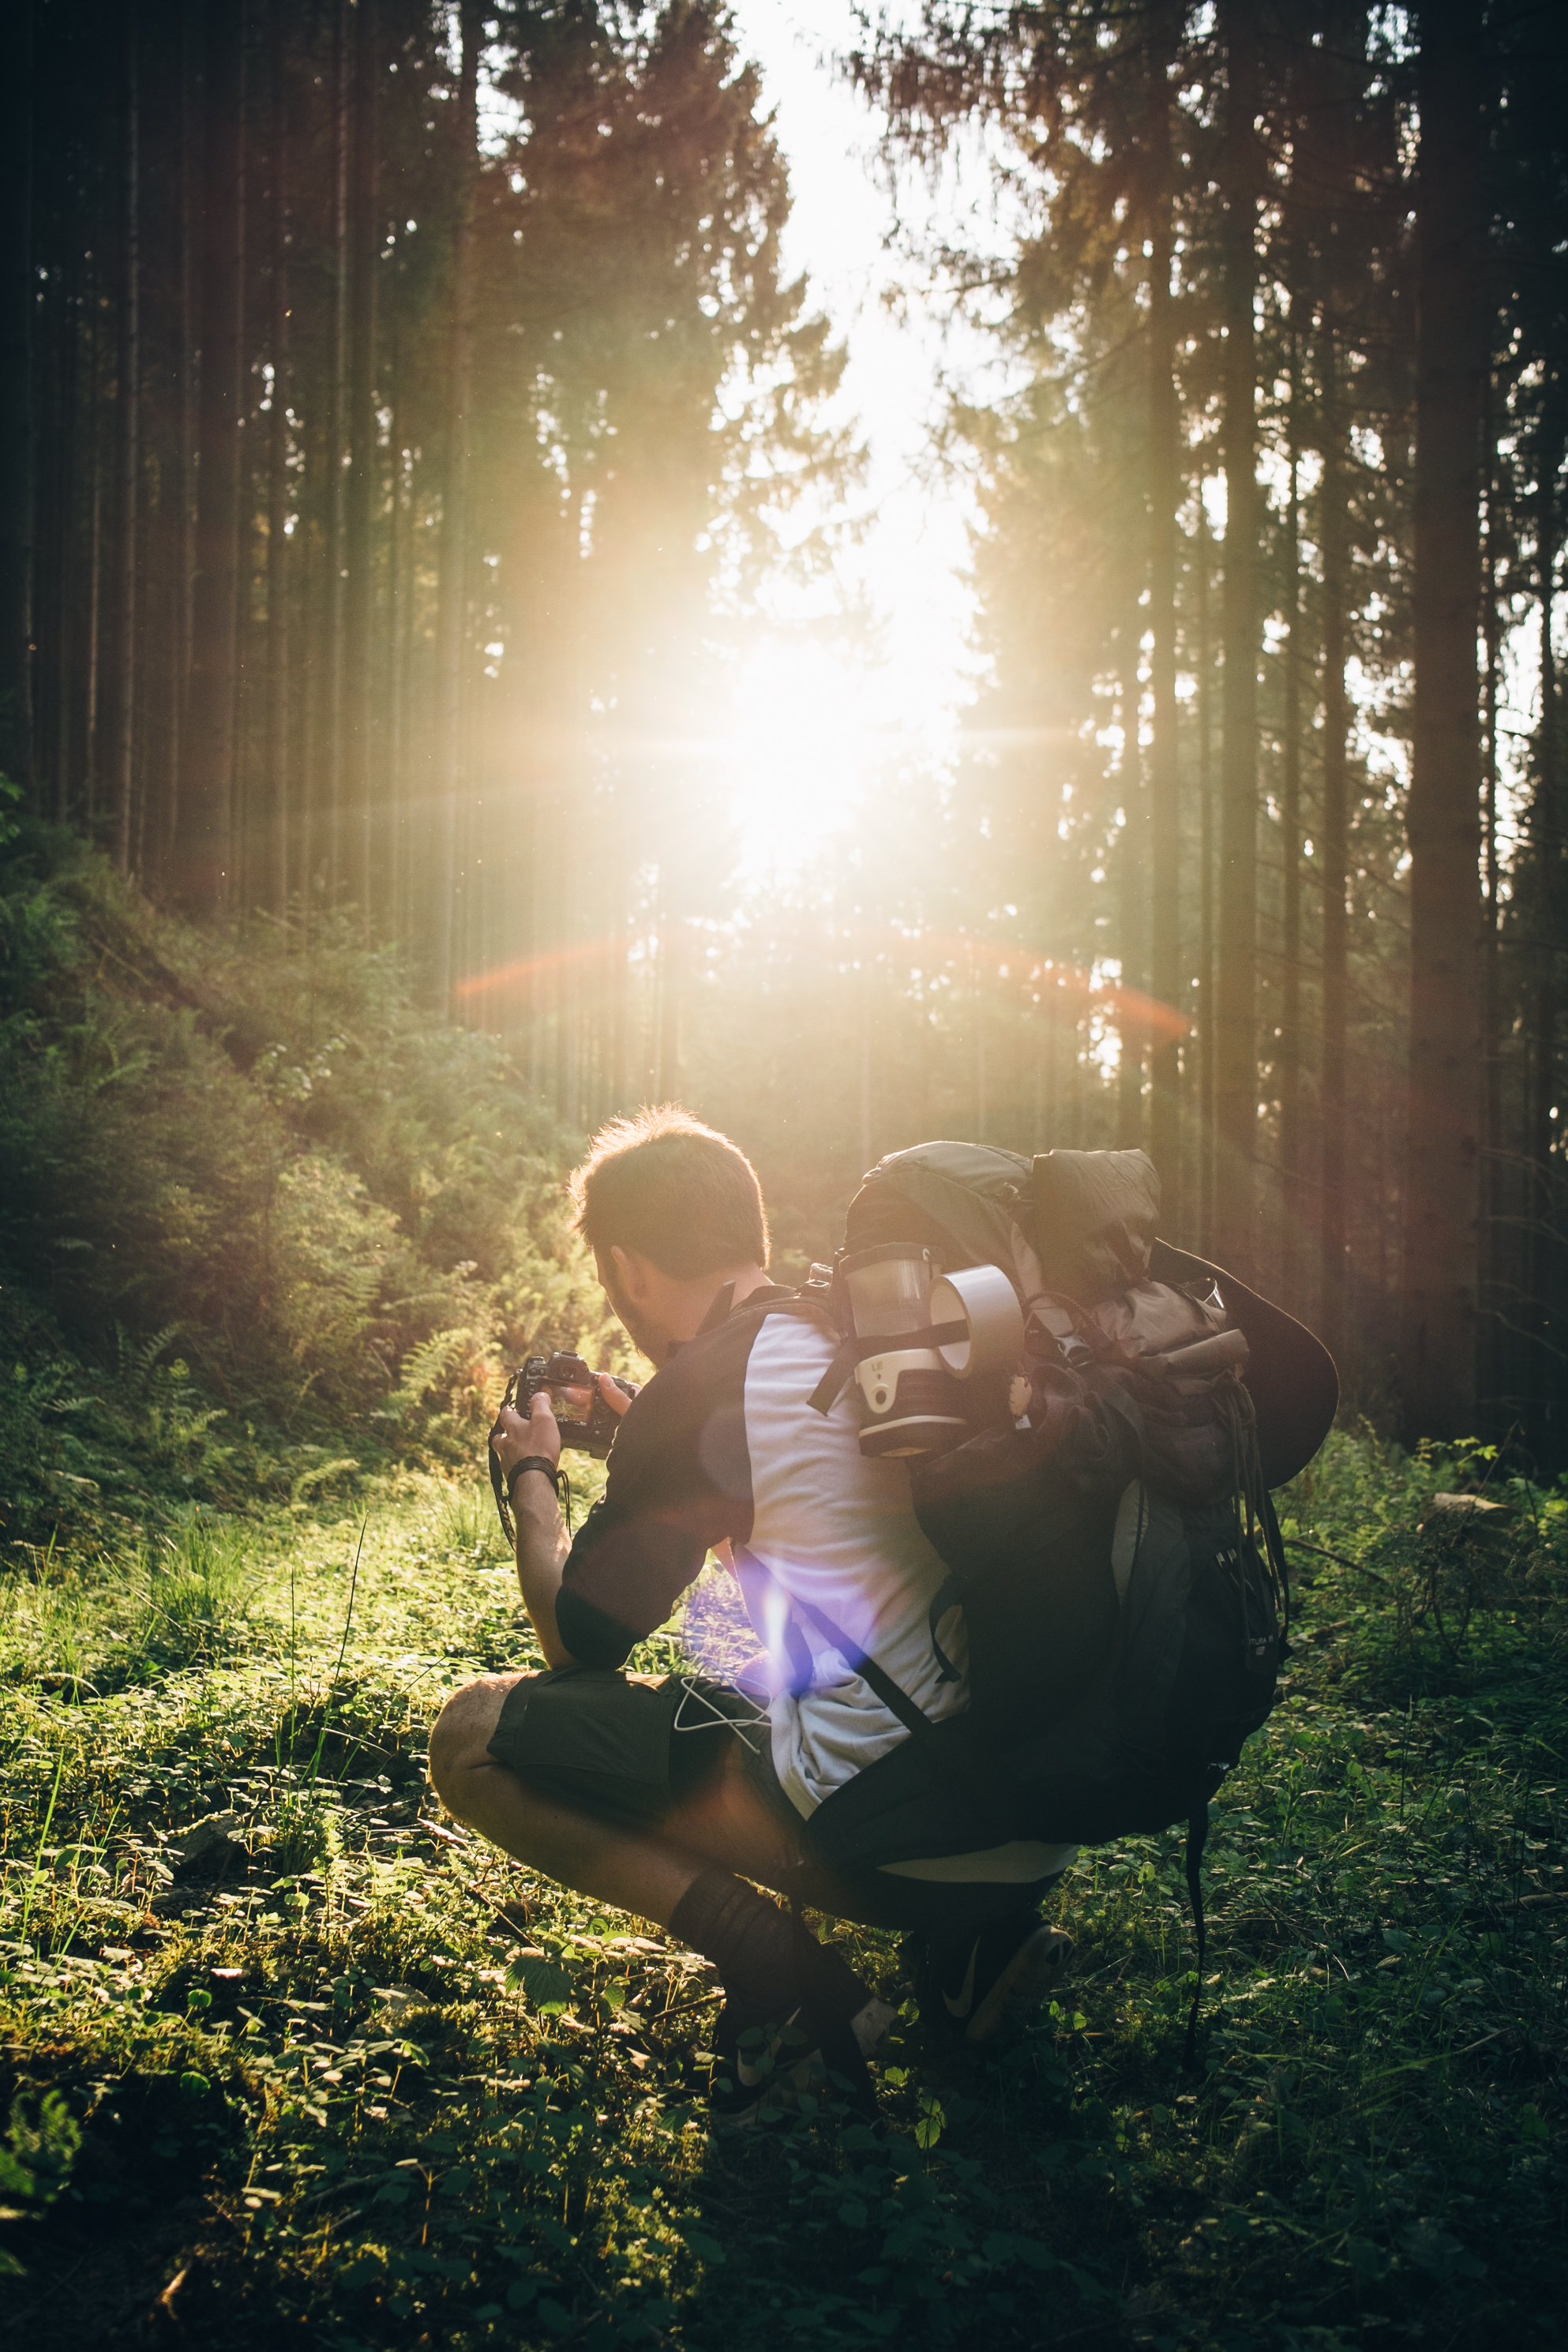 Best Hiking trips, trails, and tips for beginners : list by Angeloutdoors.com